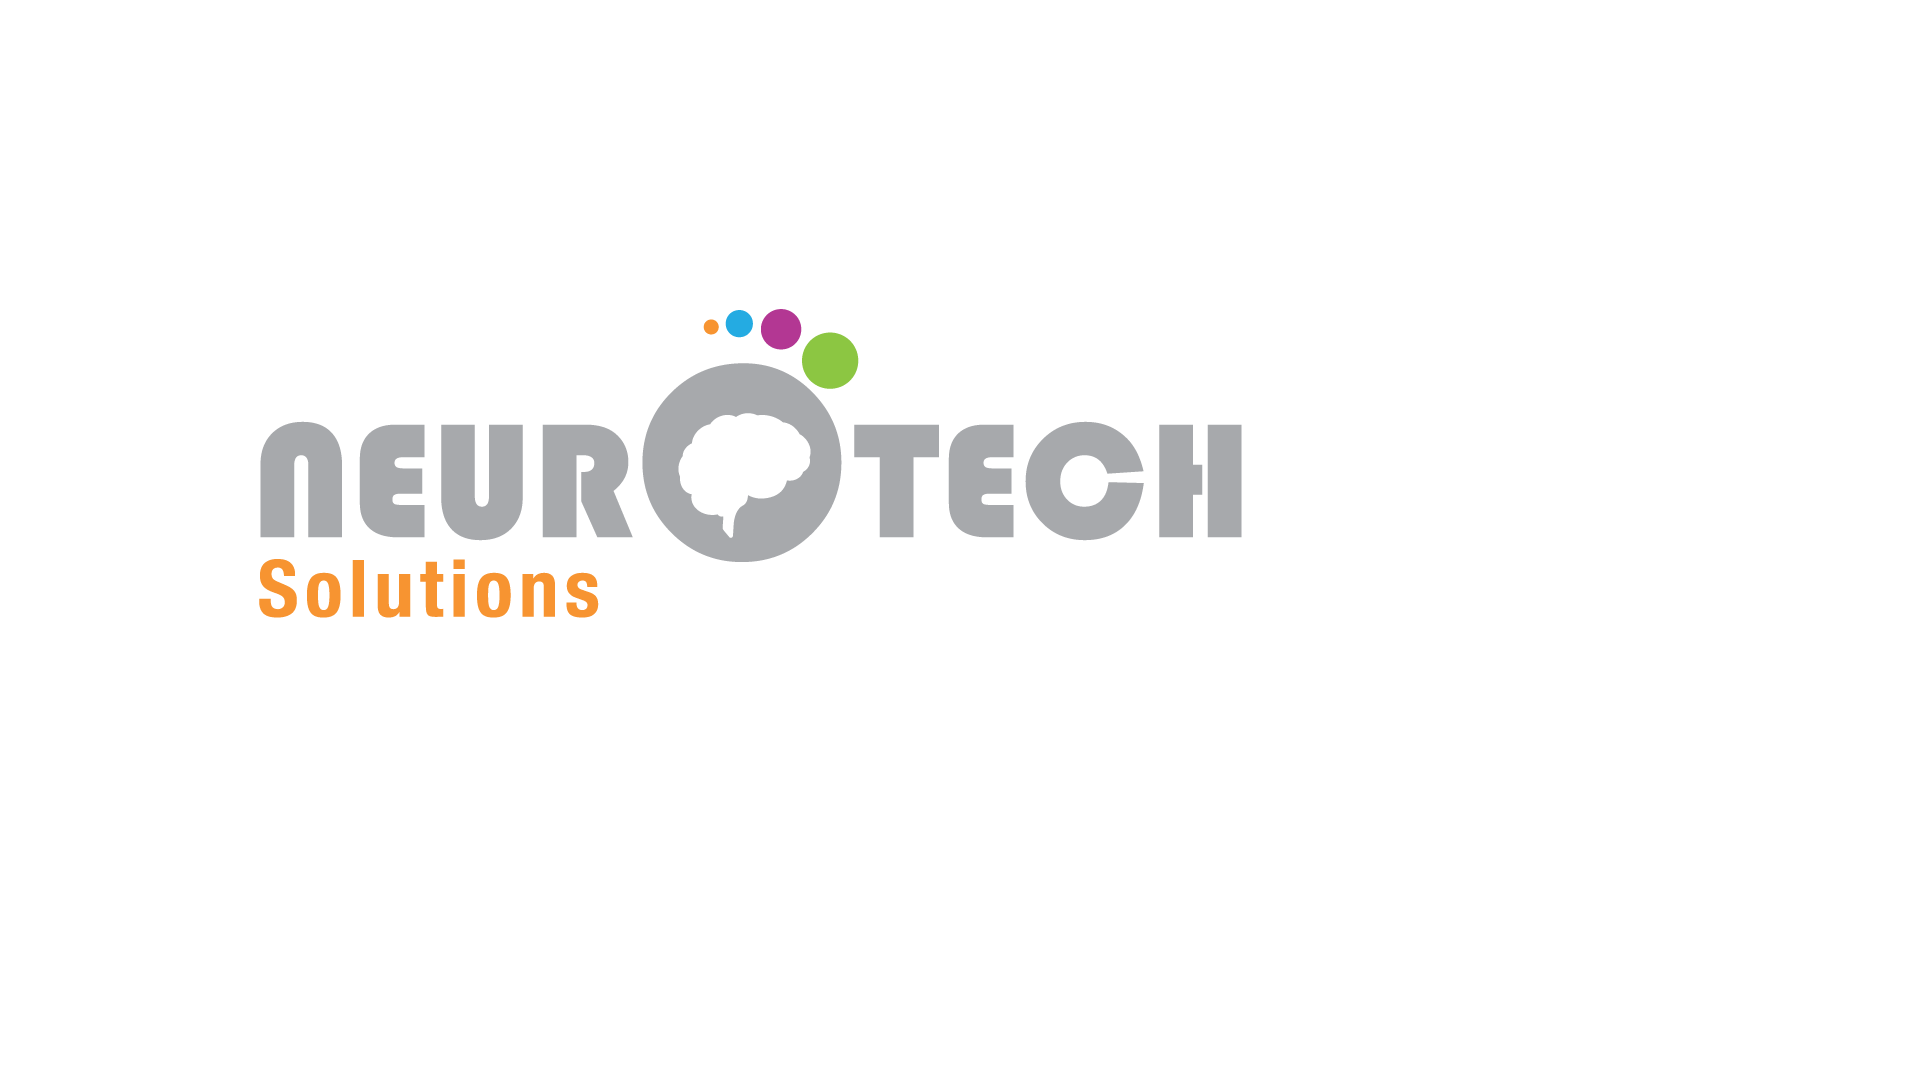 Neurotech Solutions